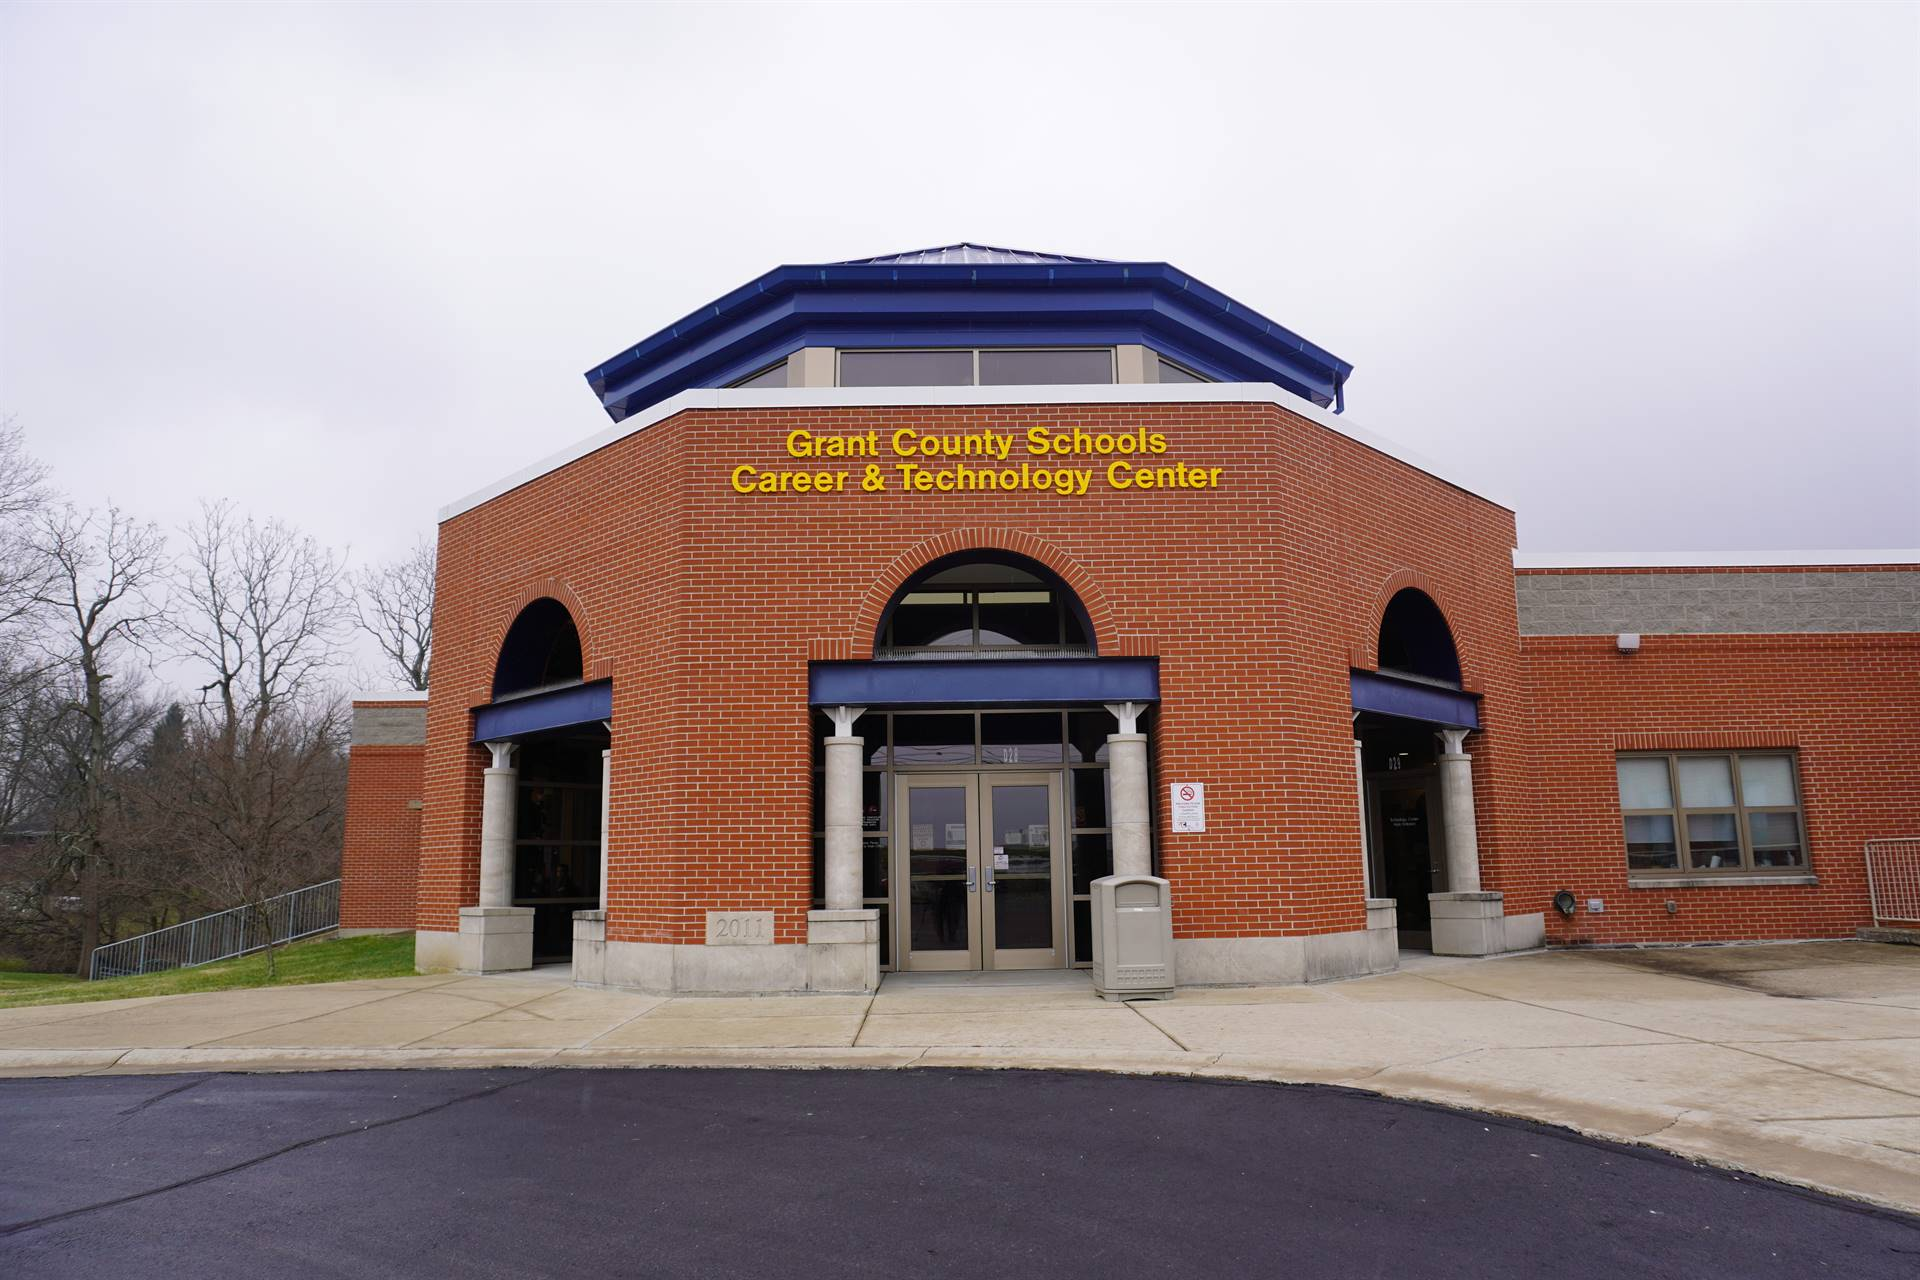 Grant County Schools Career and Technology Center